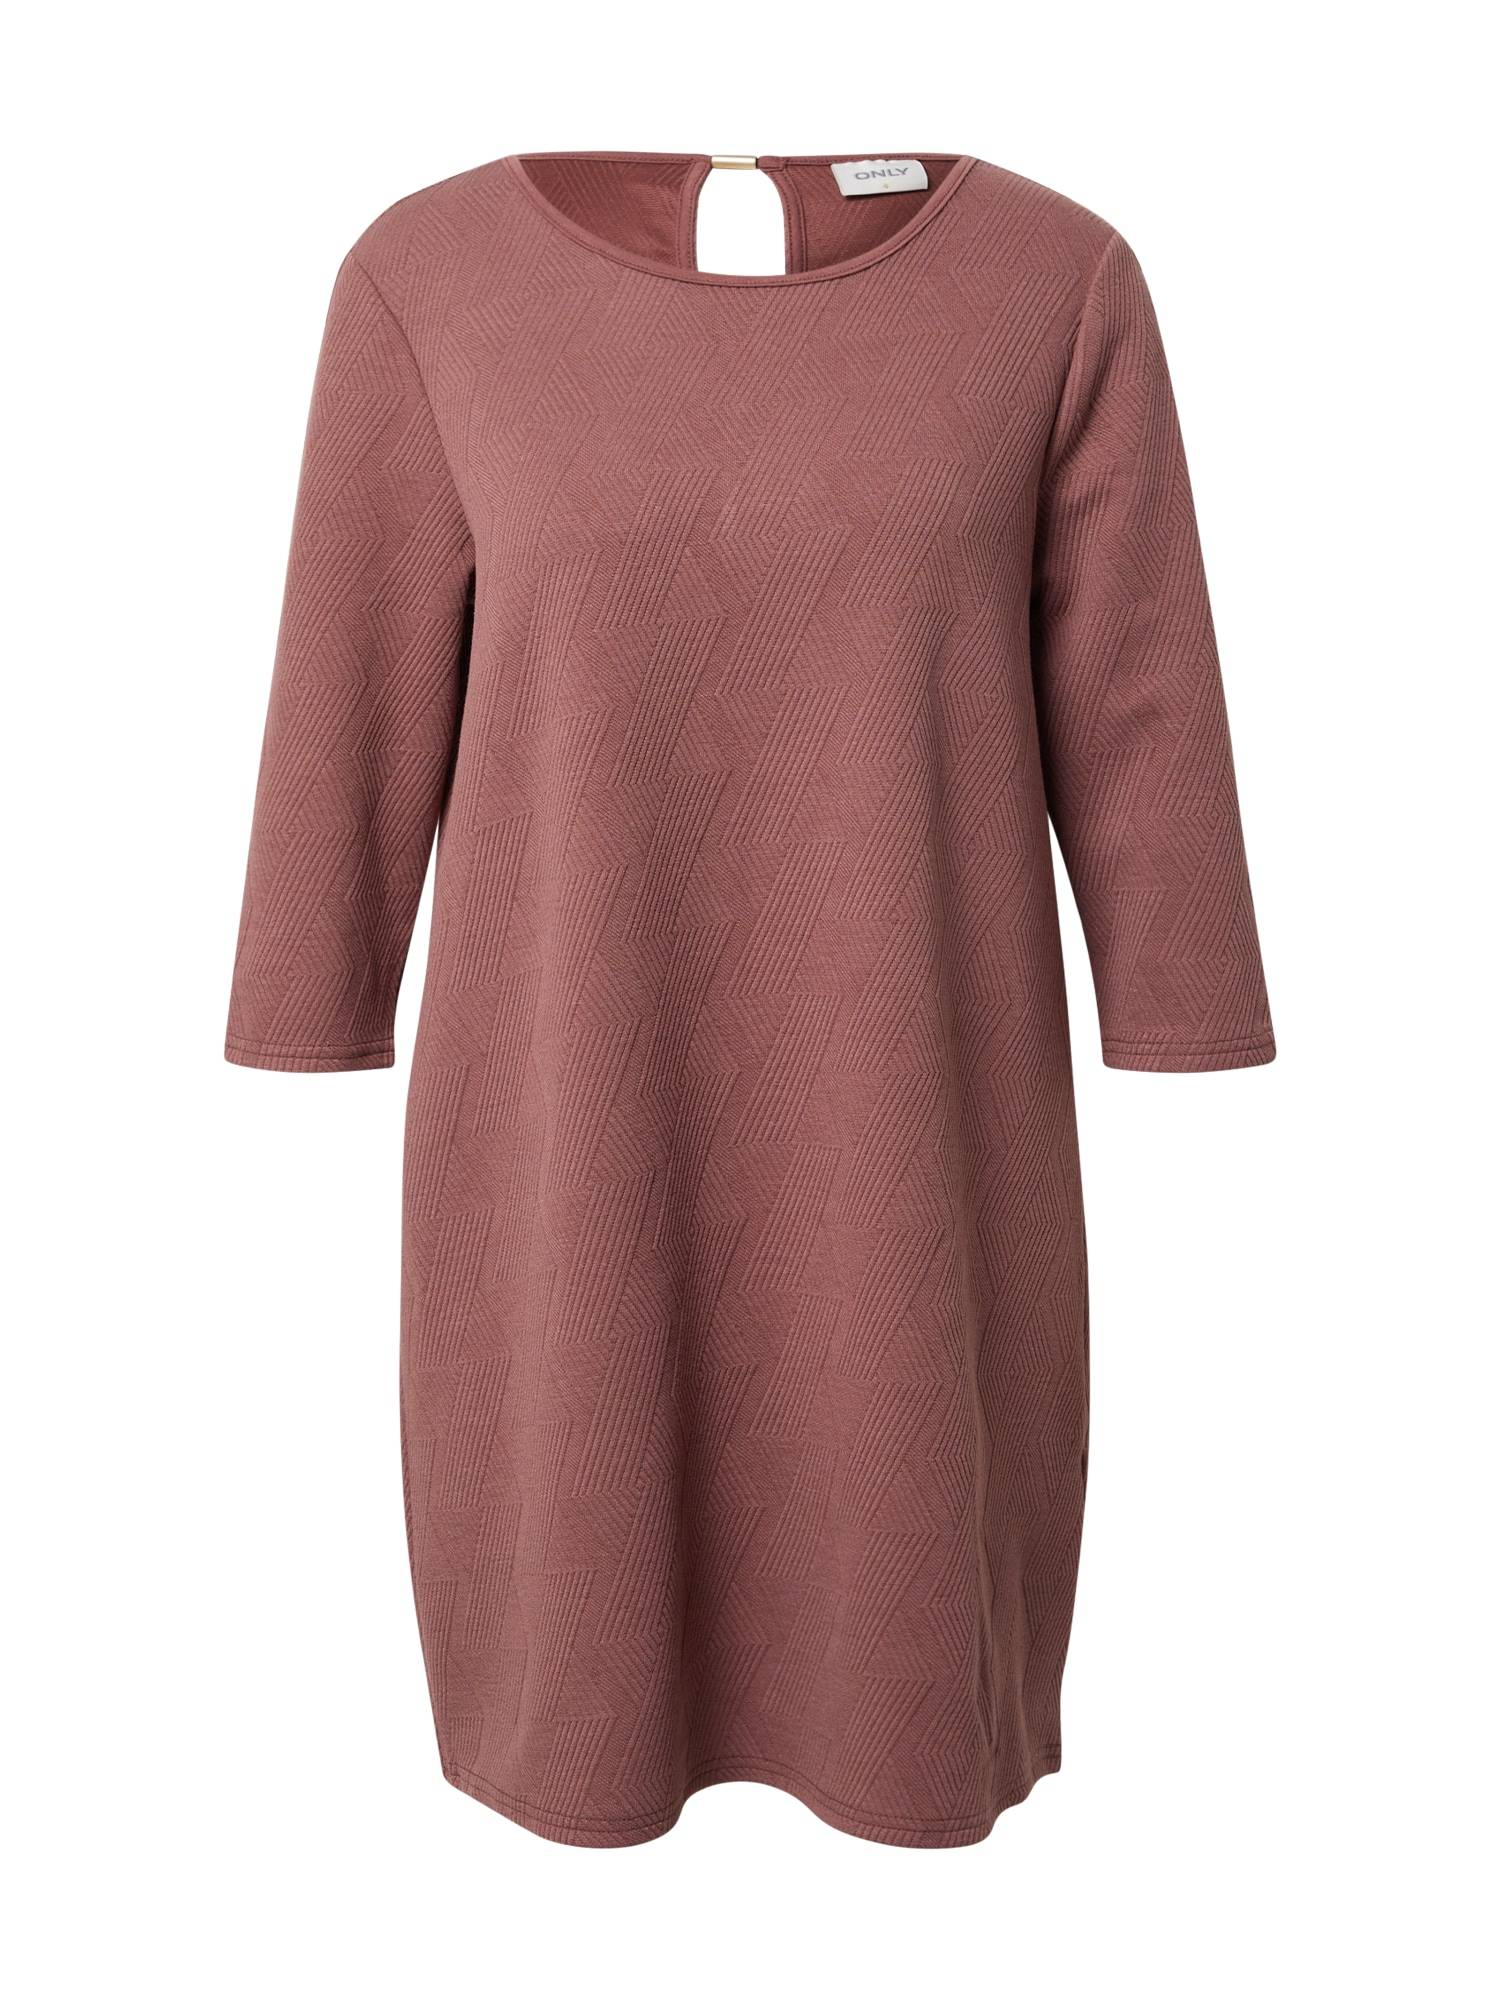 ONLY Robe 'SOJA'  - Rose - Taille: S - female